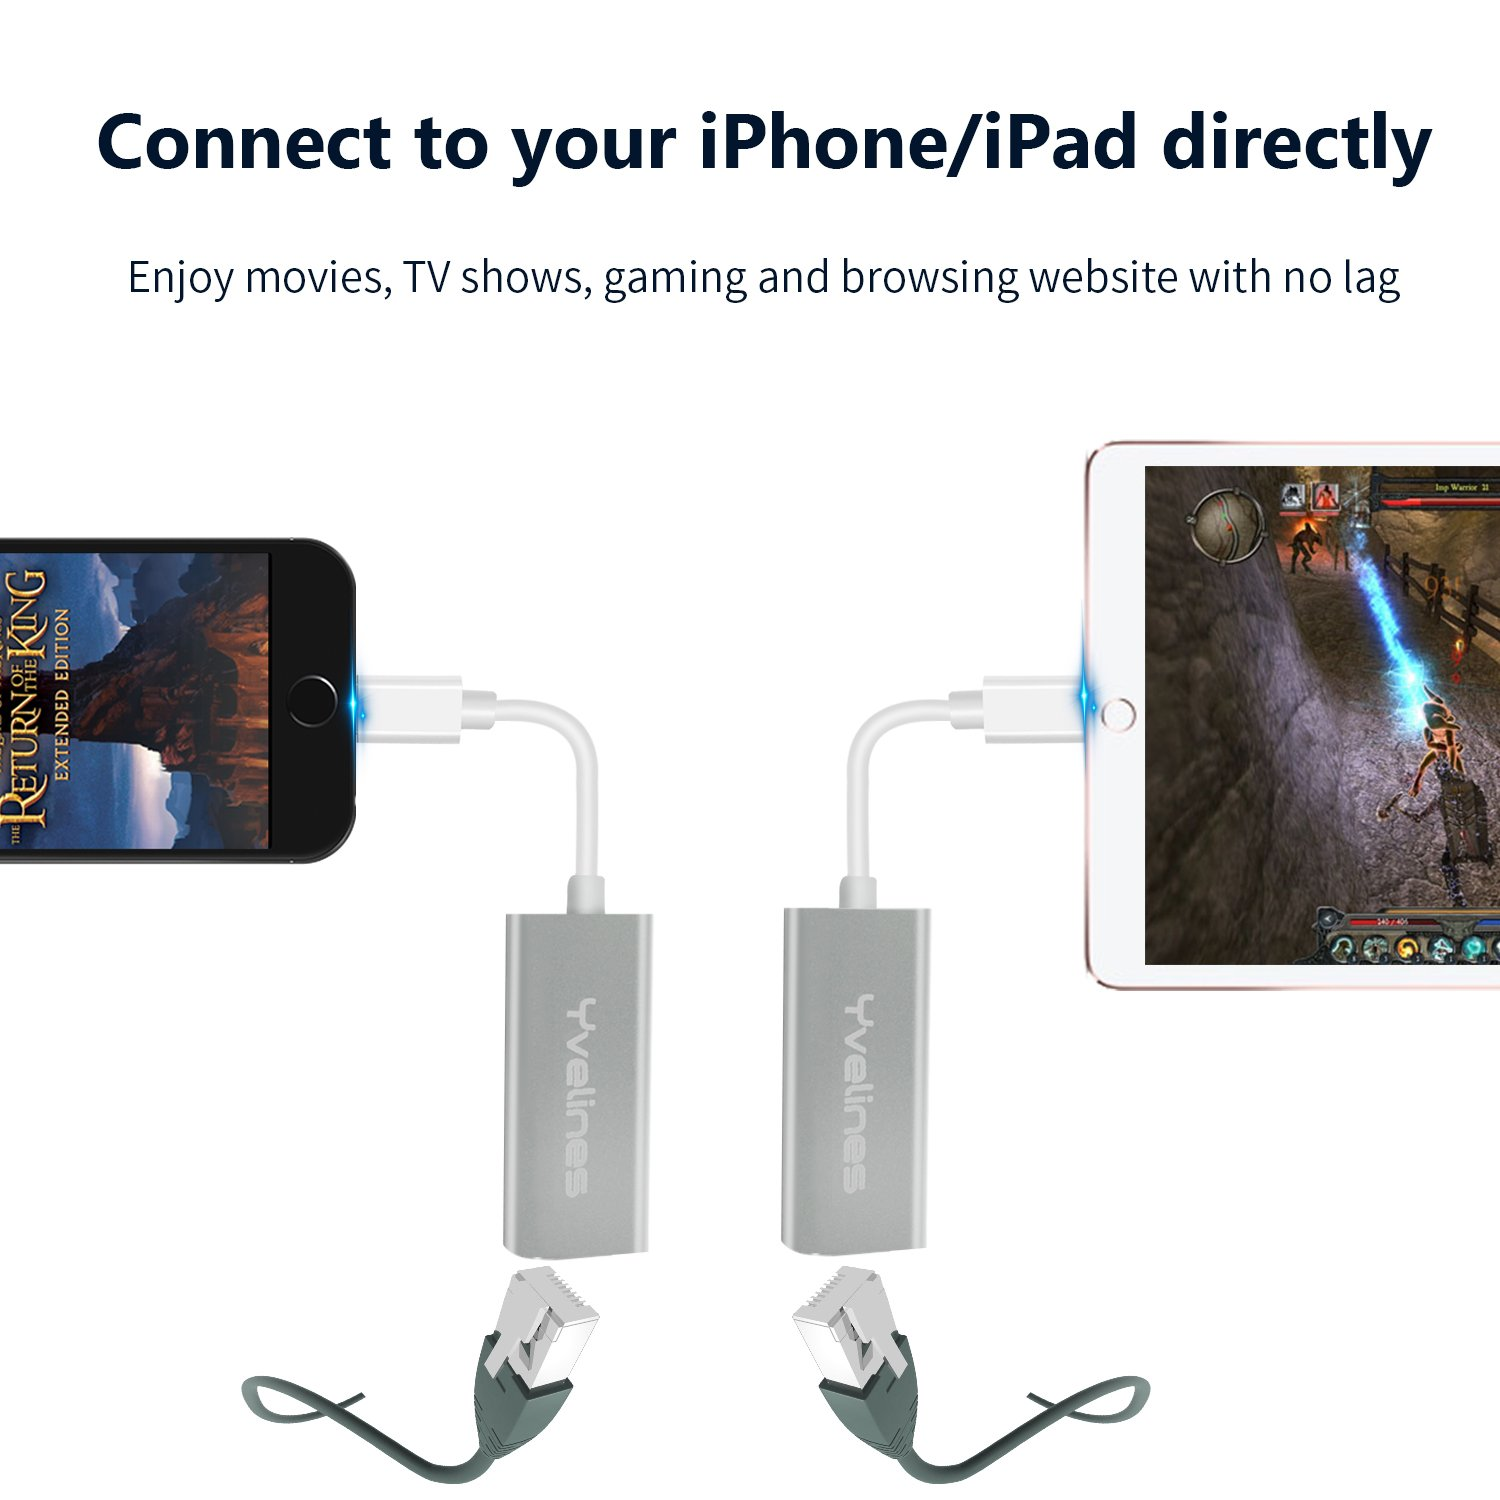 Lightning to RJ45 Ethernet Network LAN Wired Adapter, Yvelines Portable  Aluminum 10/100Mbps Hub Converter for iPad/iPhone/iPod Internet Connection  via